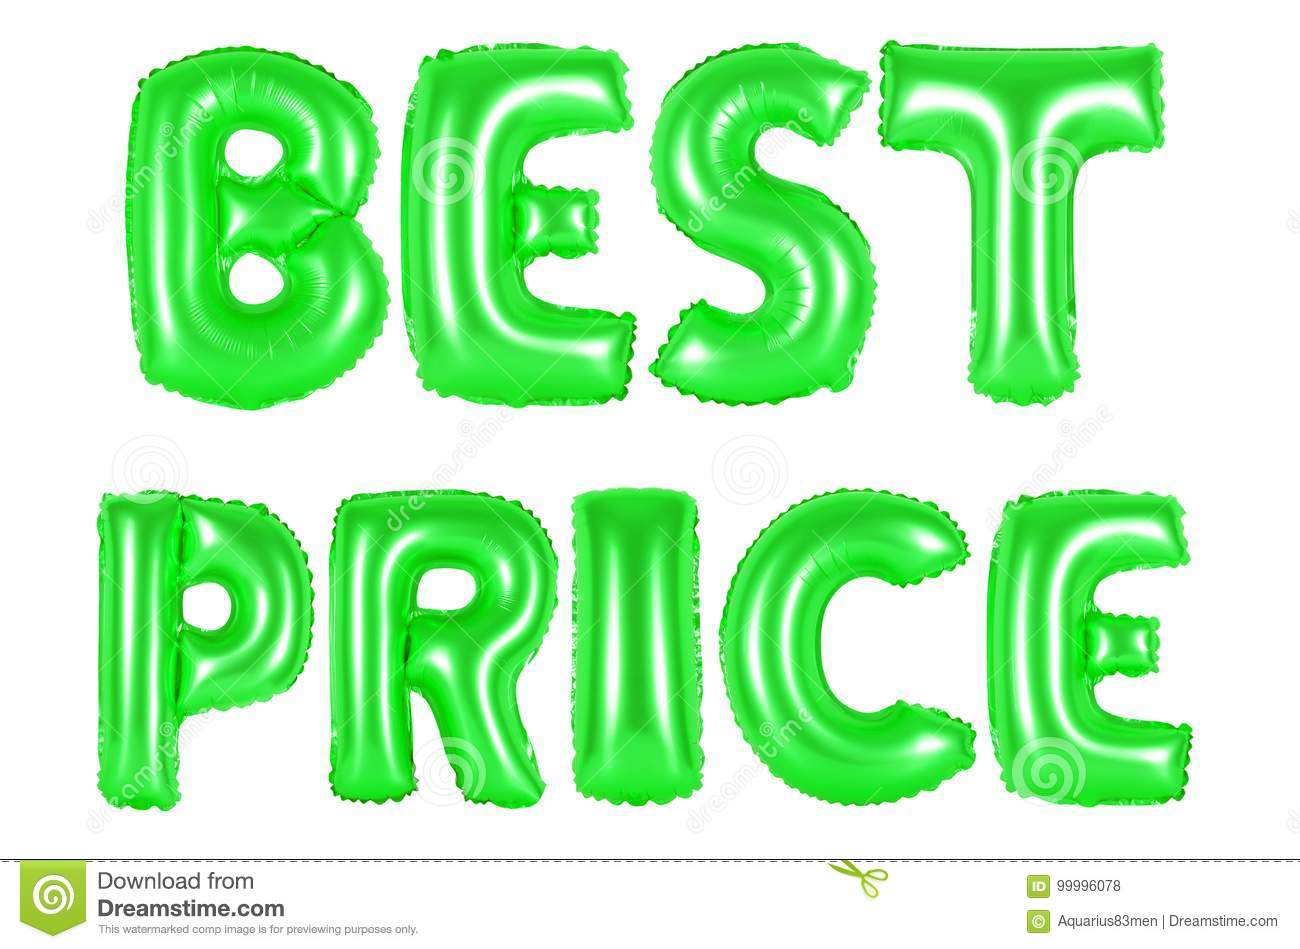 Best price, green color stock photo. Image of commercial - 99996078